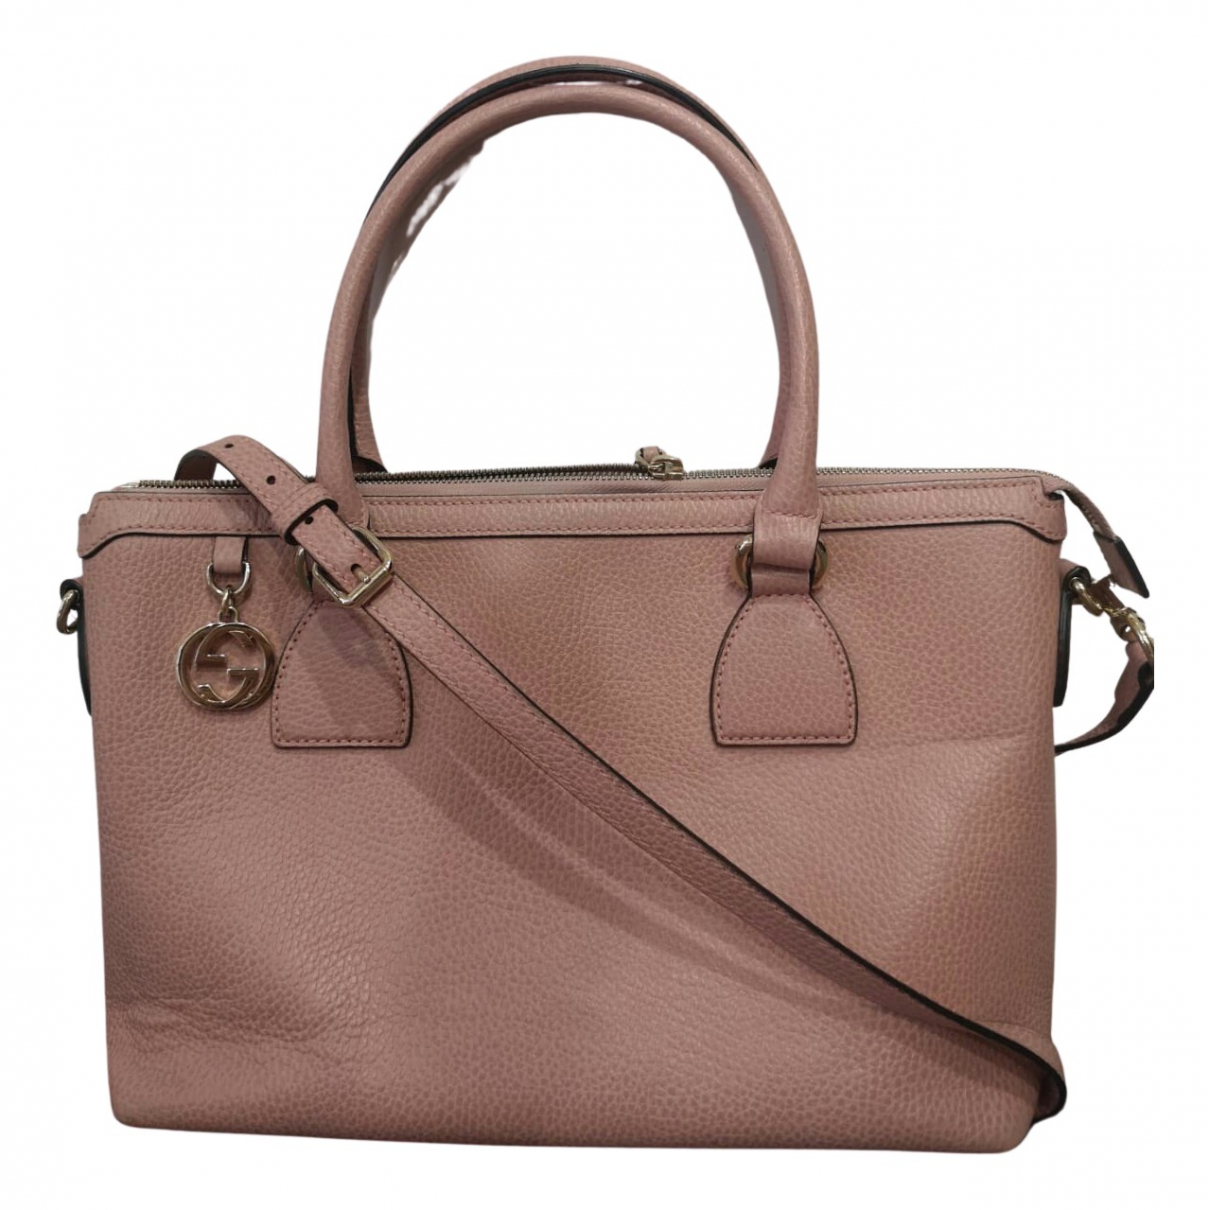 Gucci N Pink Leather handbag for Women N